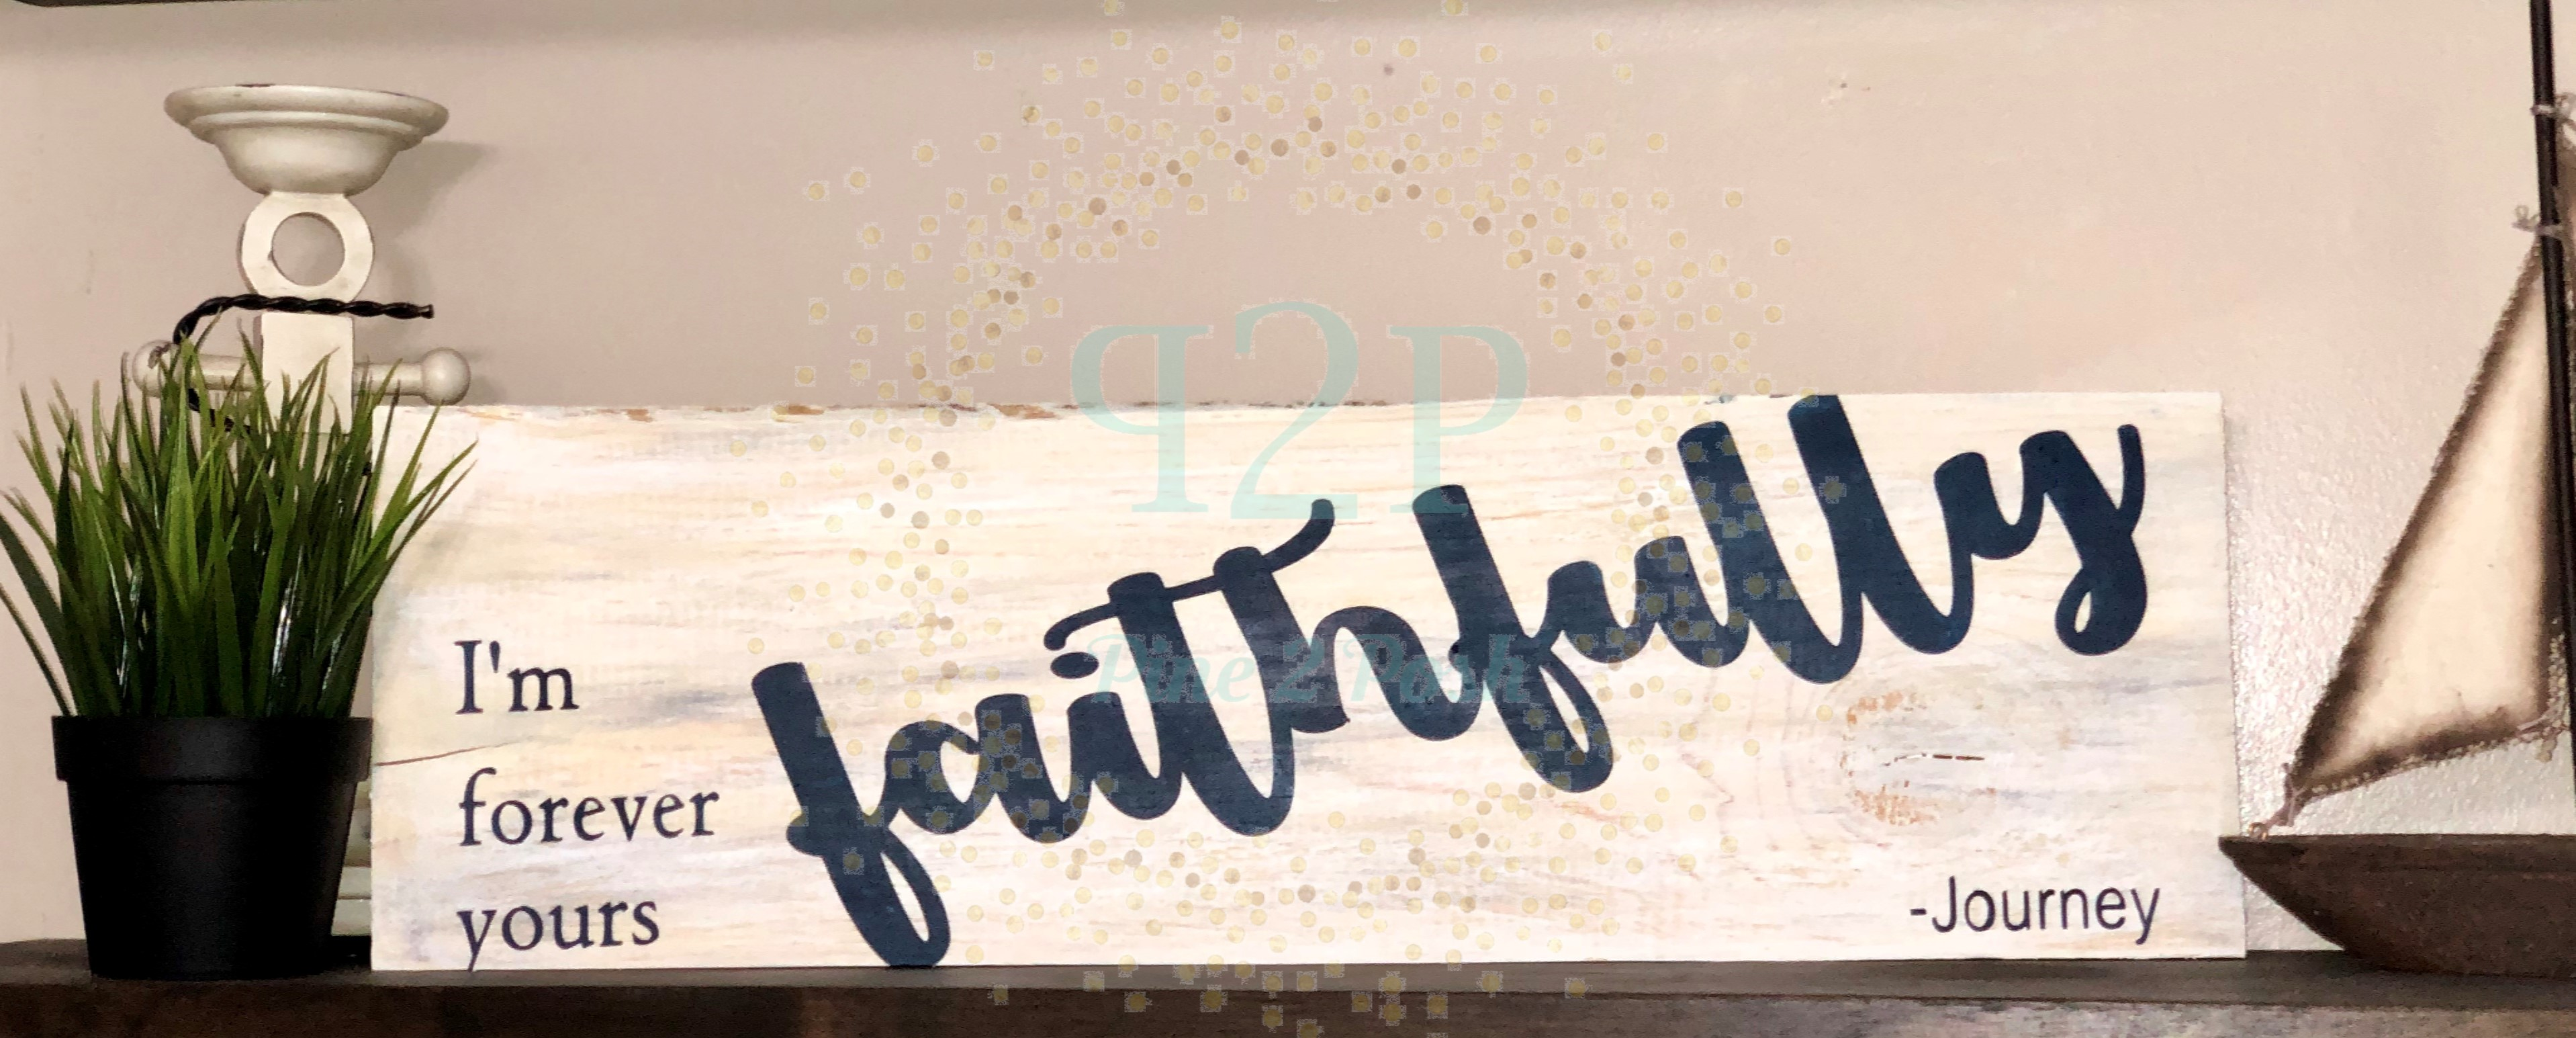 265 - Faithfully